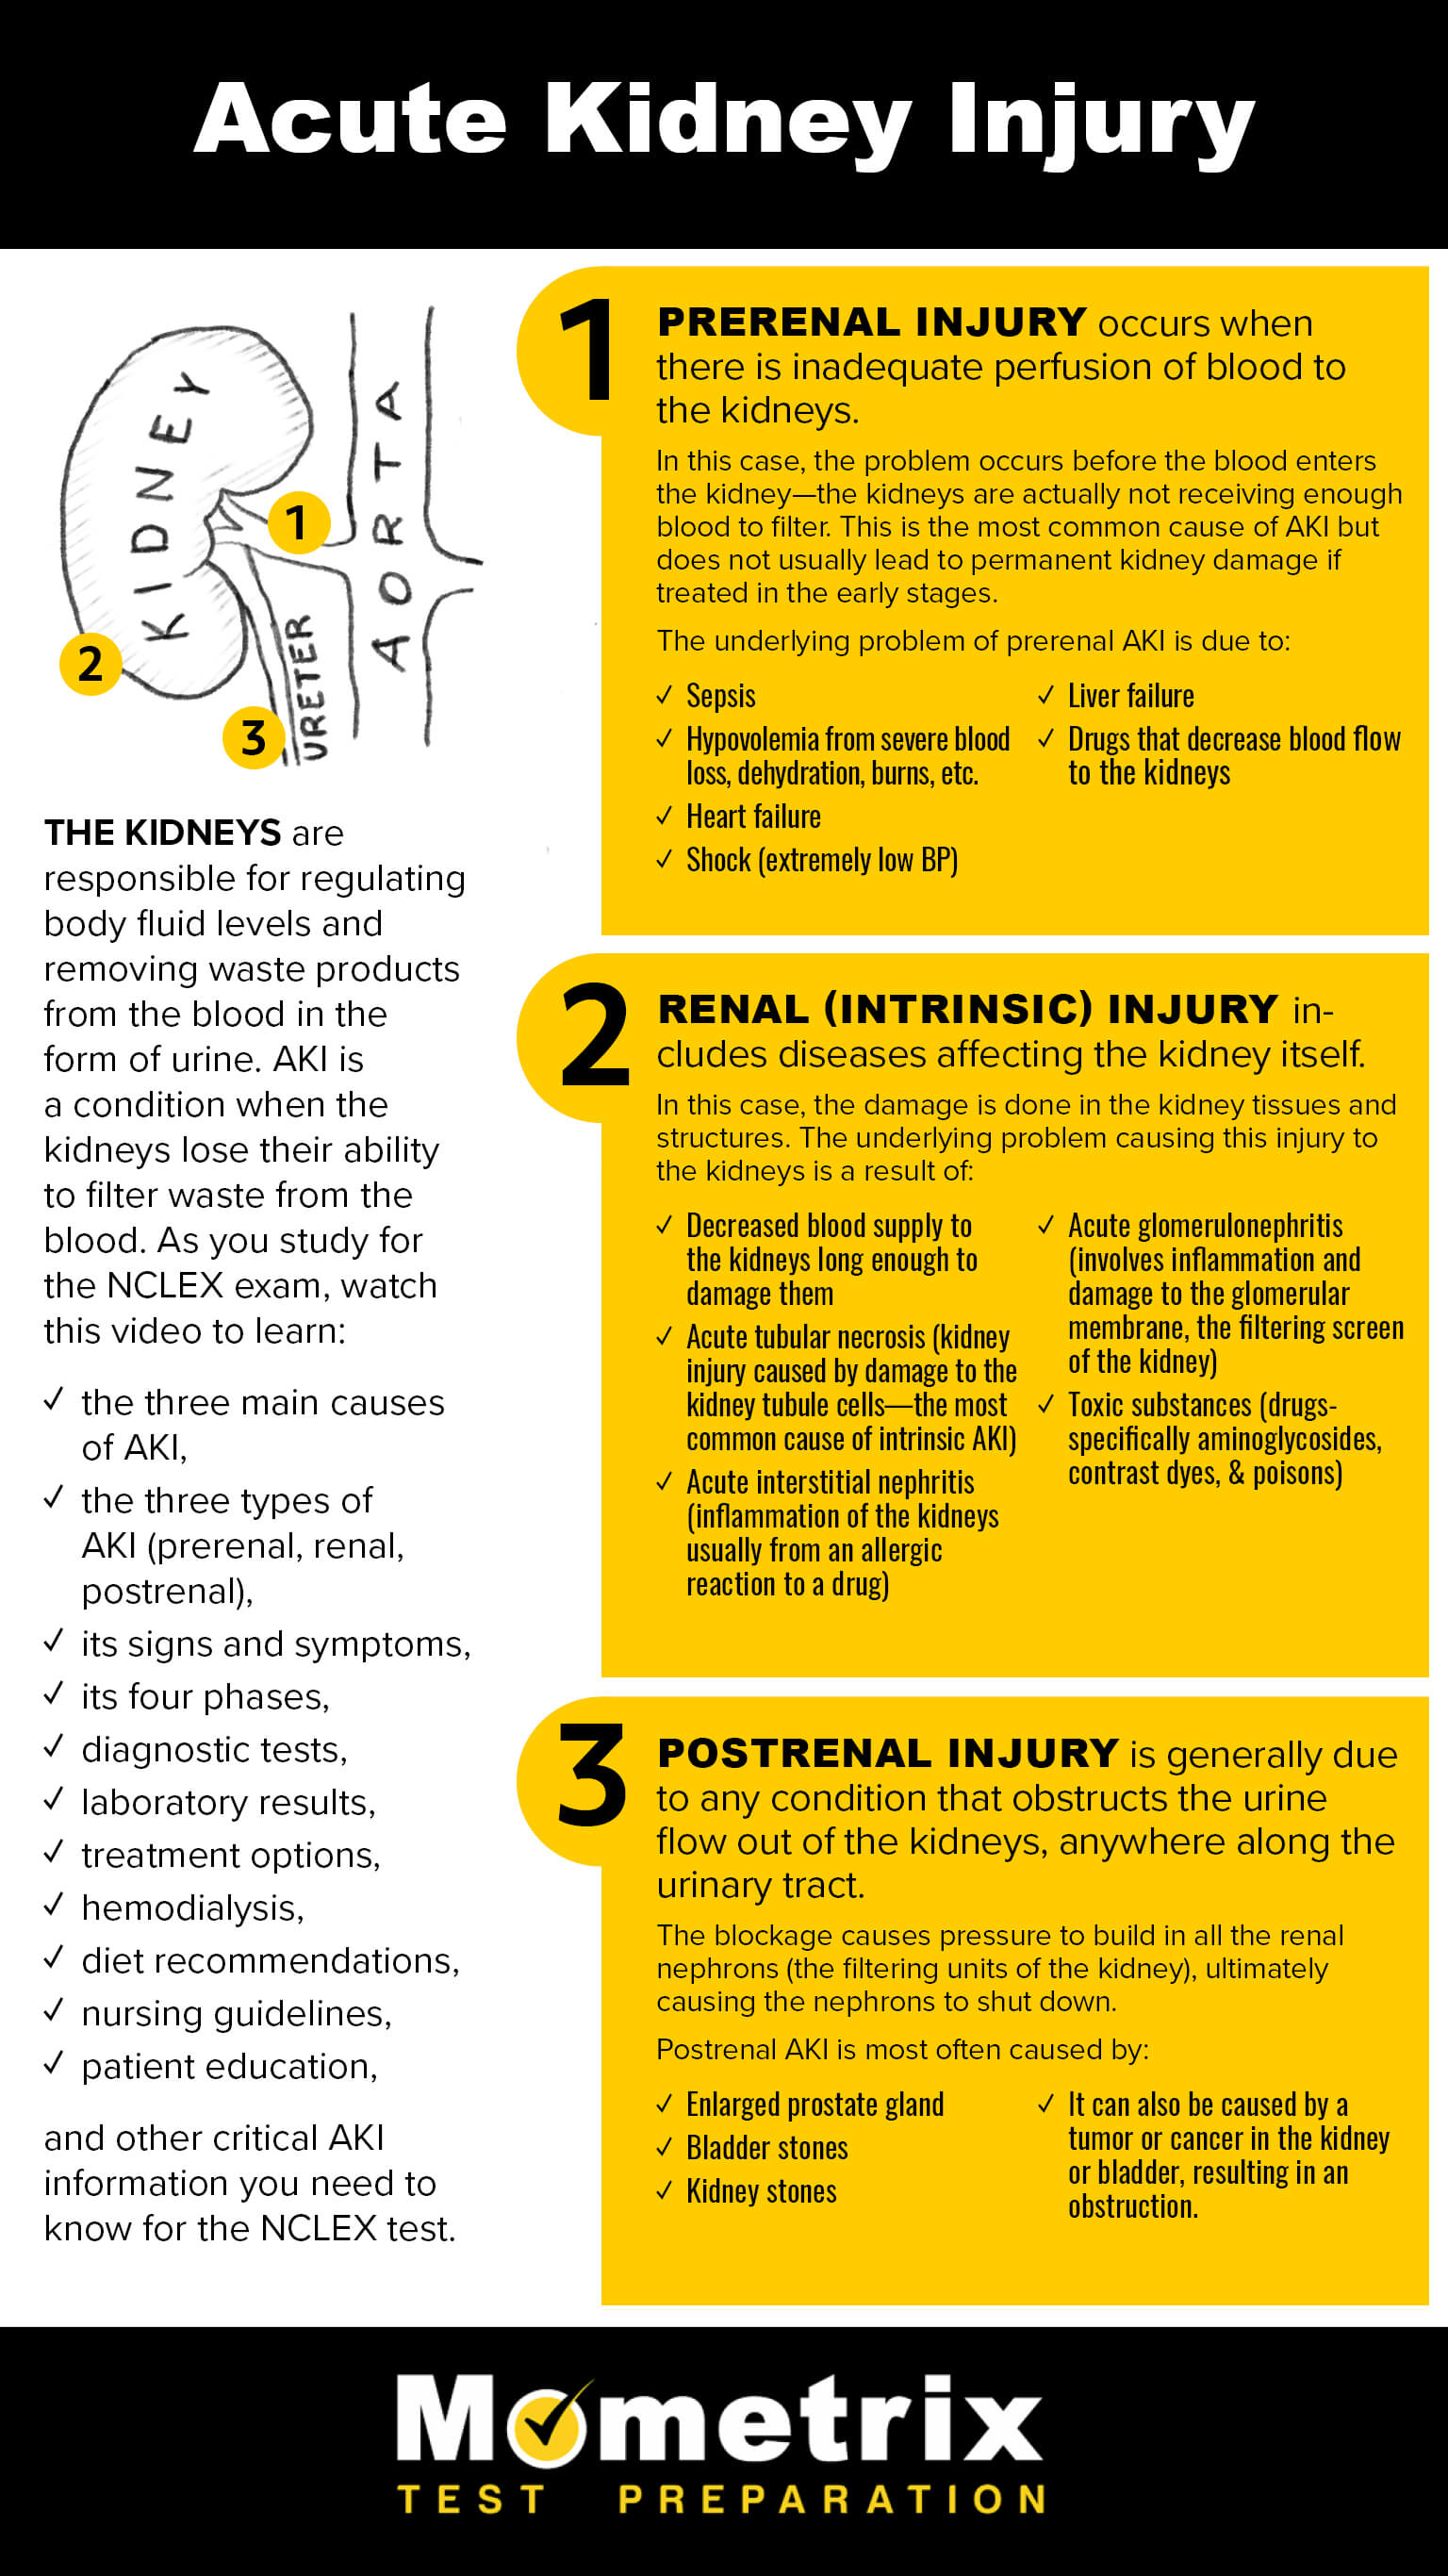 NCLEX Review: Acute Kidney Injury Review